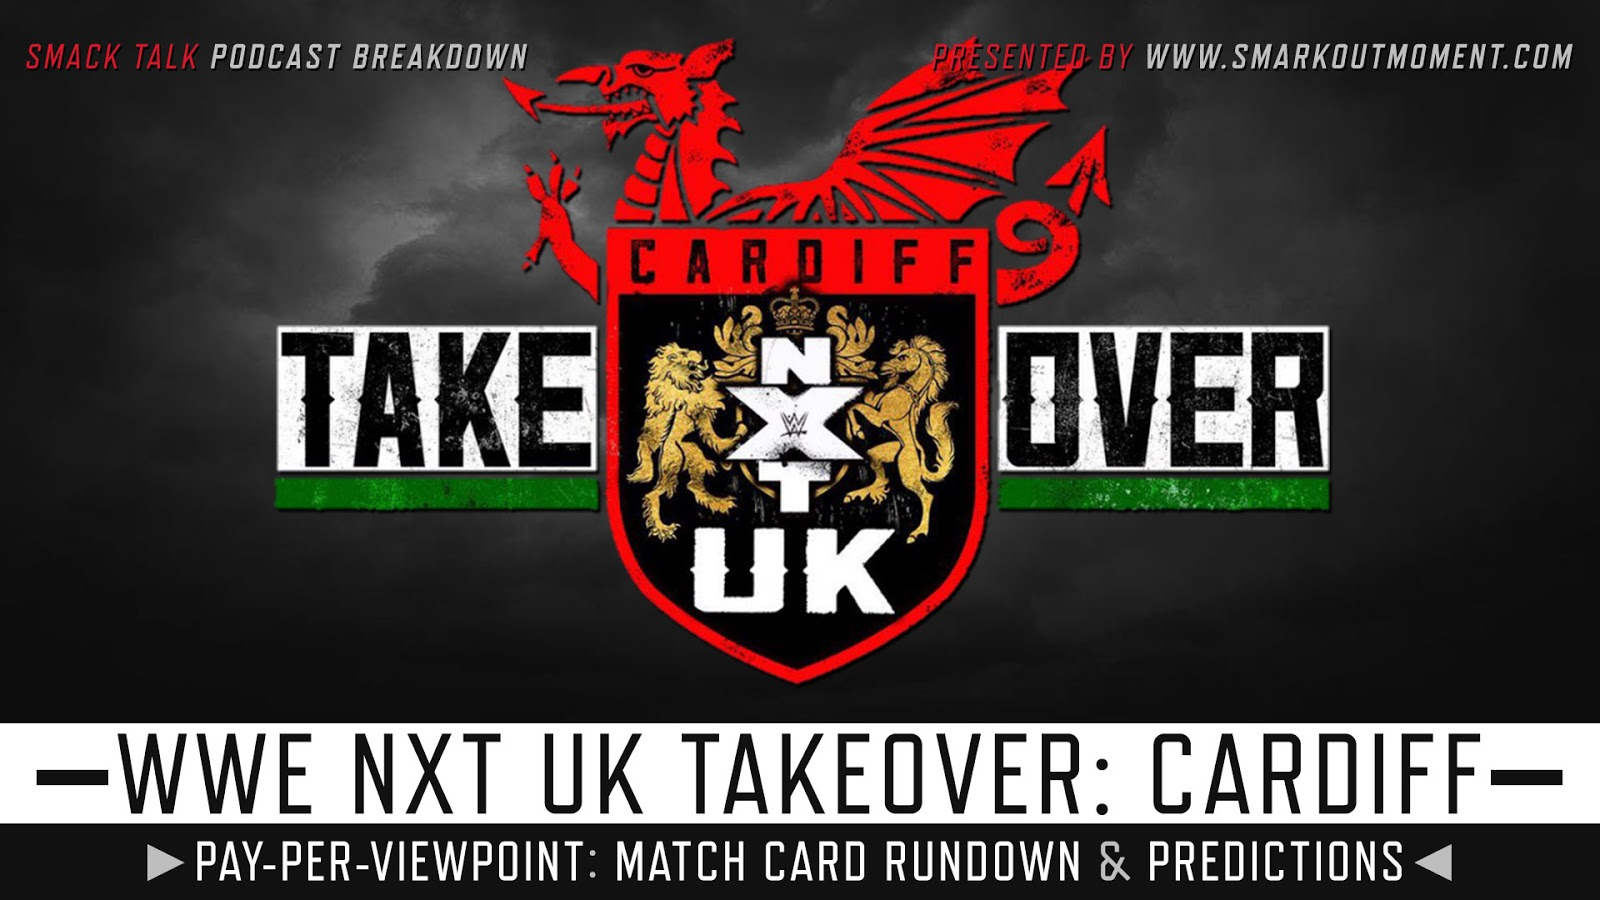 WWE NXT UK TakeOver: Cardiff spoilers podcast